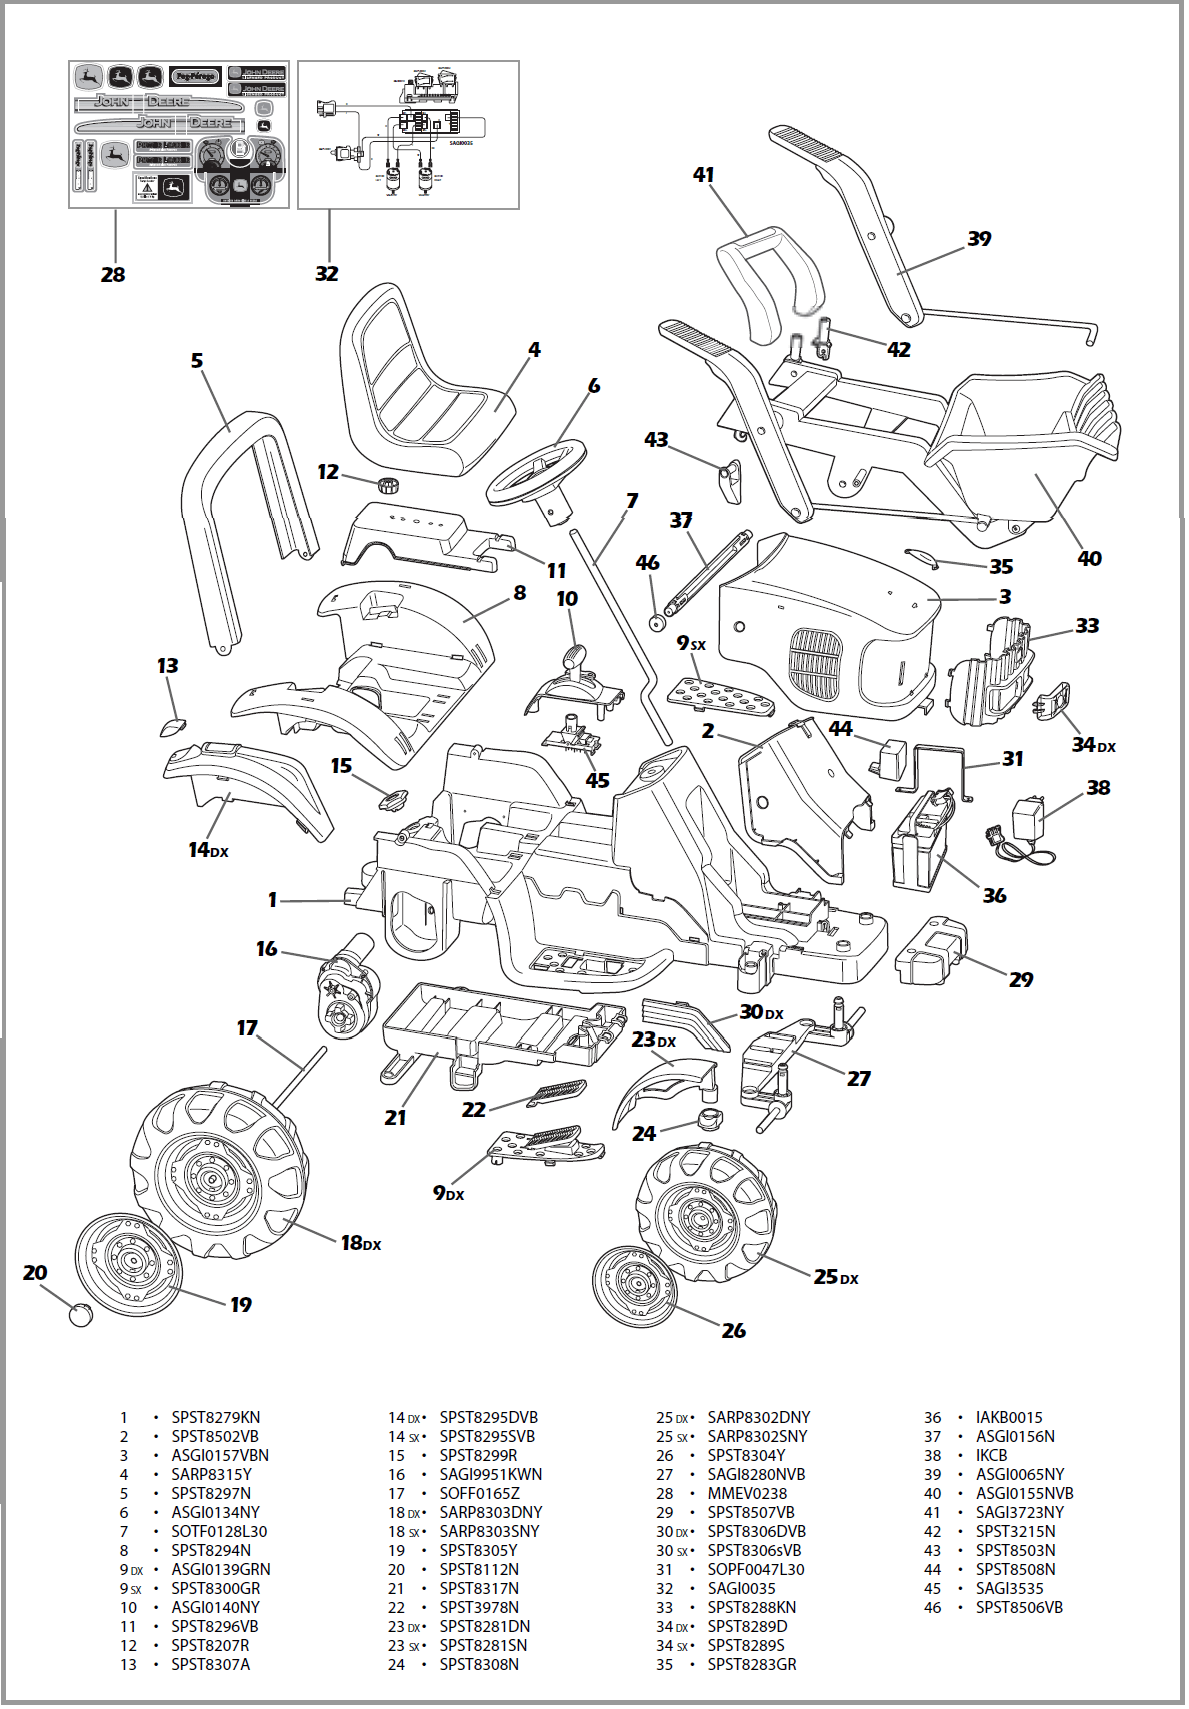 John Deere 48 Mower Deck Parts Diagram